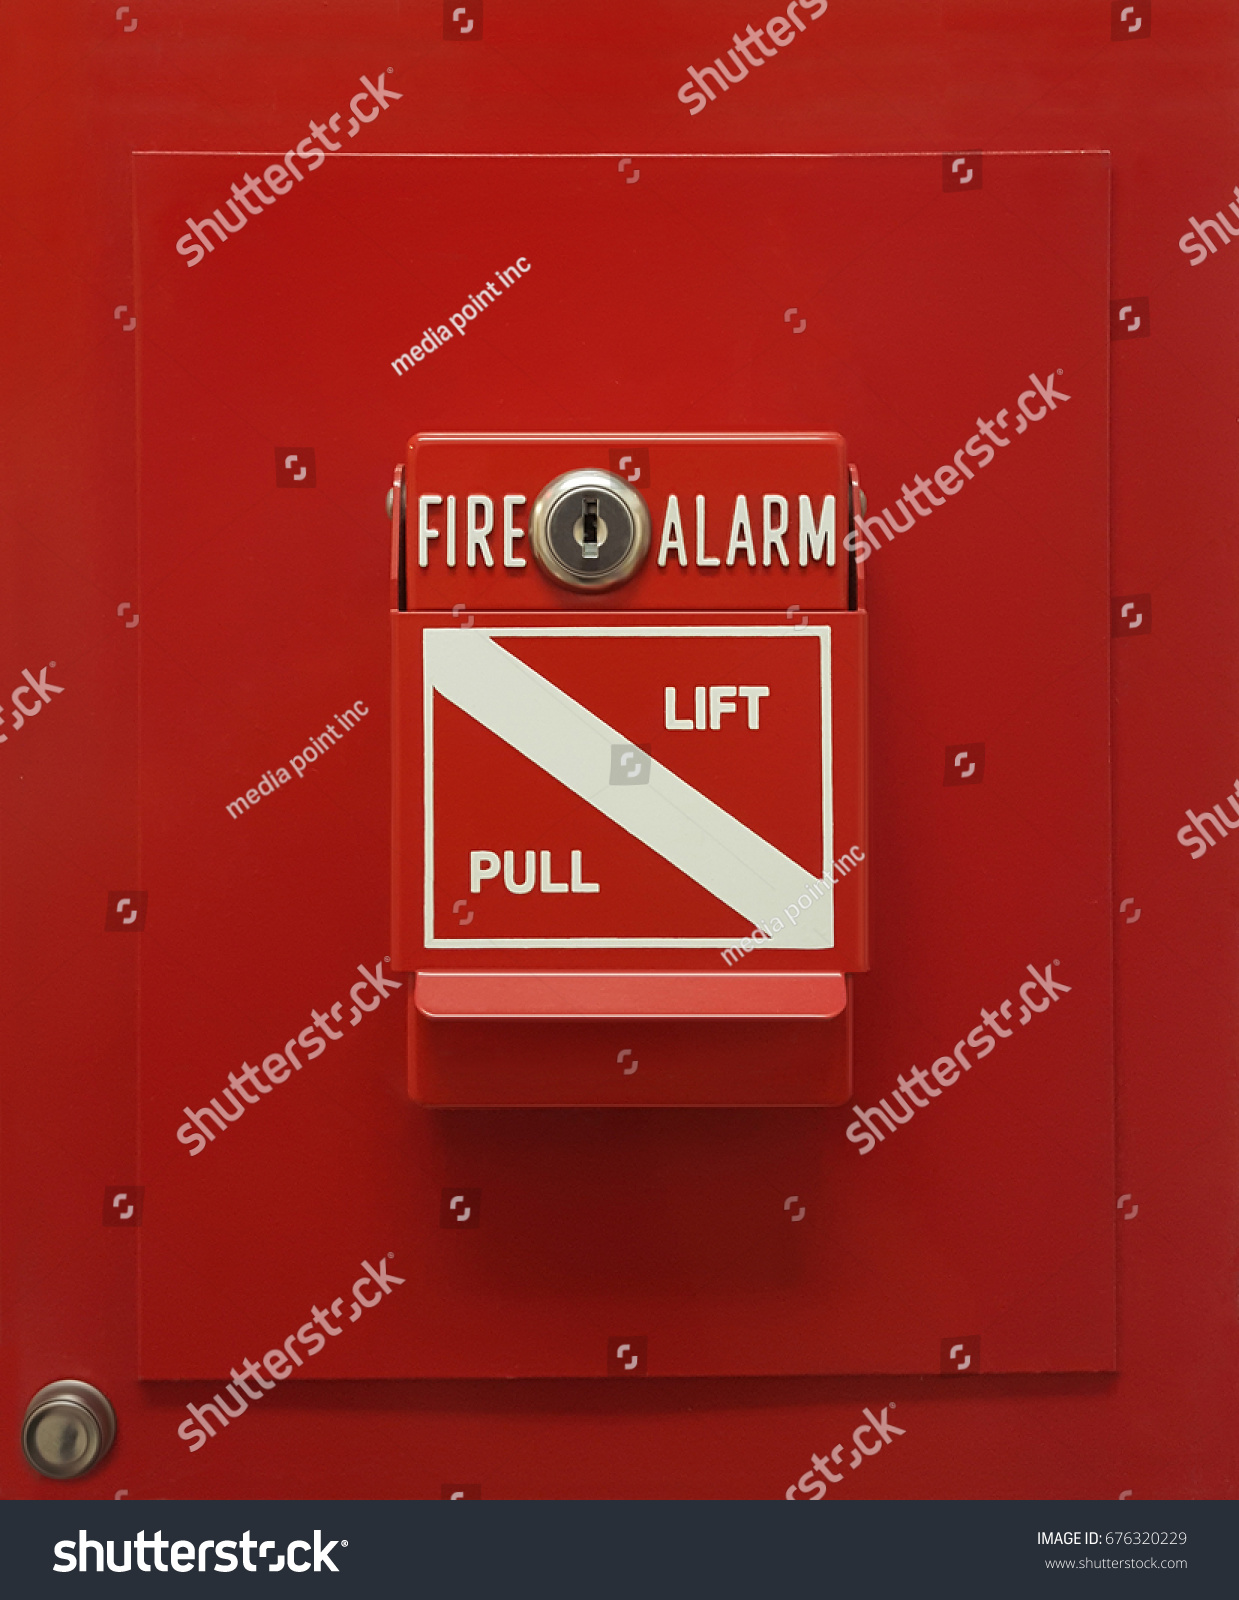 Safety Fire Alarm Lift Pull Box Stock Photo Edit Now 676320229